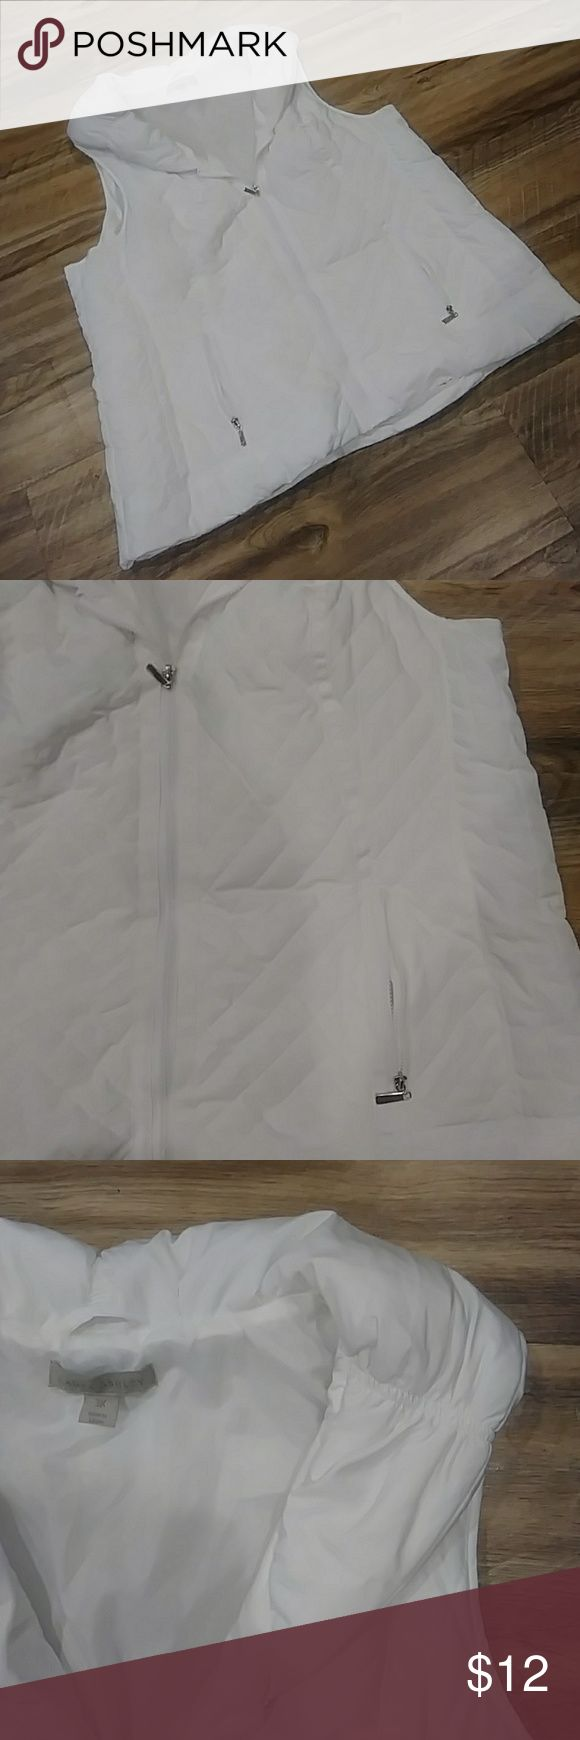 NWOT white quilted vest Never worn. Quilted with puffier collar and silver hardware. I took off the tag and noticed a hole pattern at the armpit I didn't like. It's exactly the same on both sides so it's suppose to be like that. Laura Ashley Jackets & Coats Vests